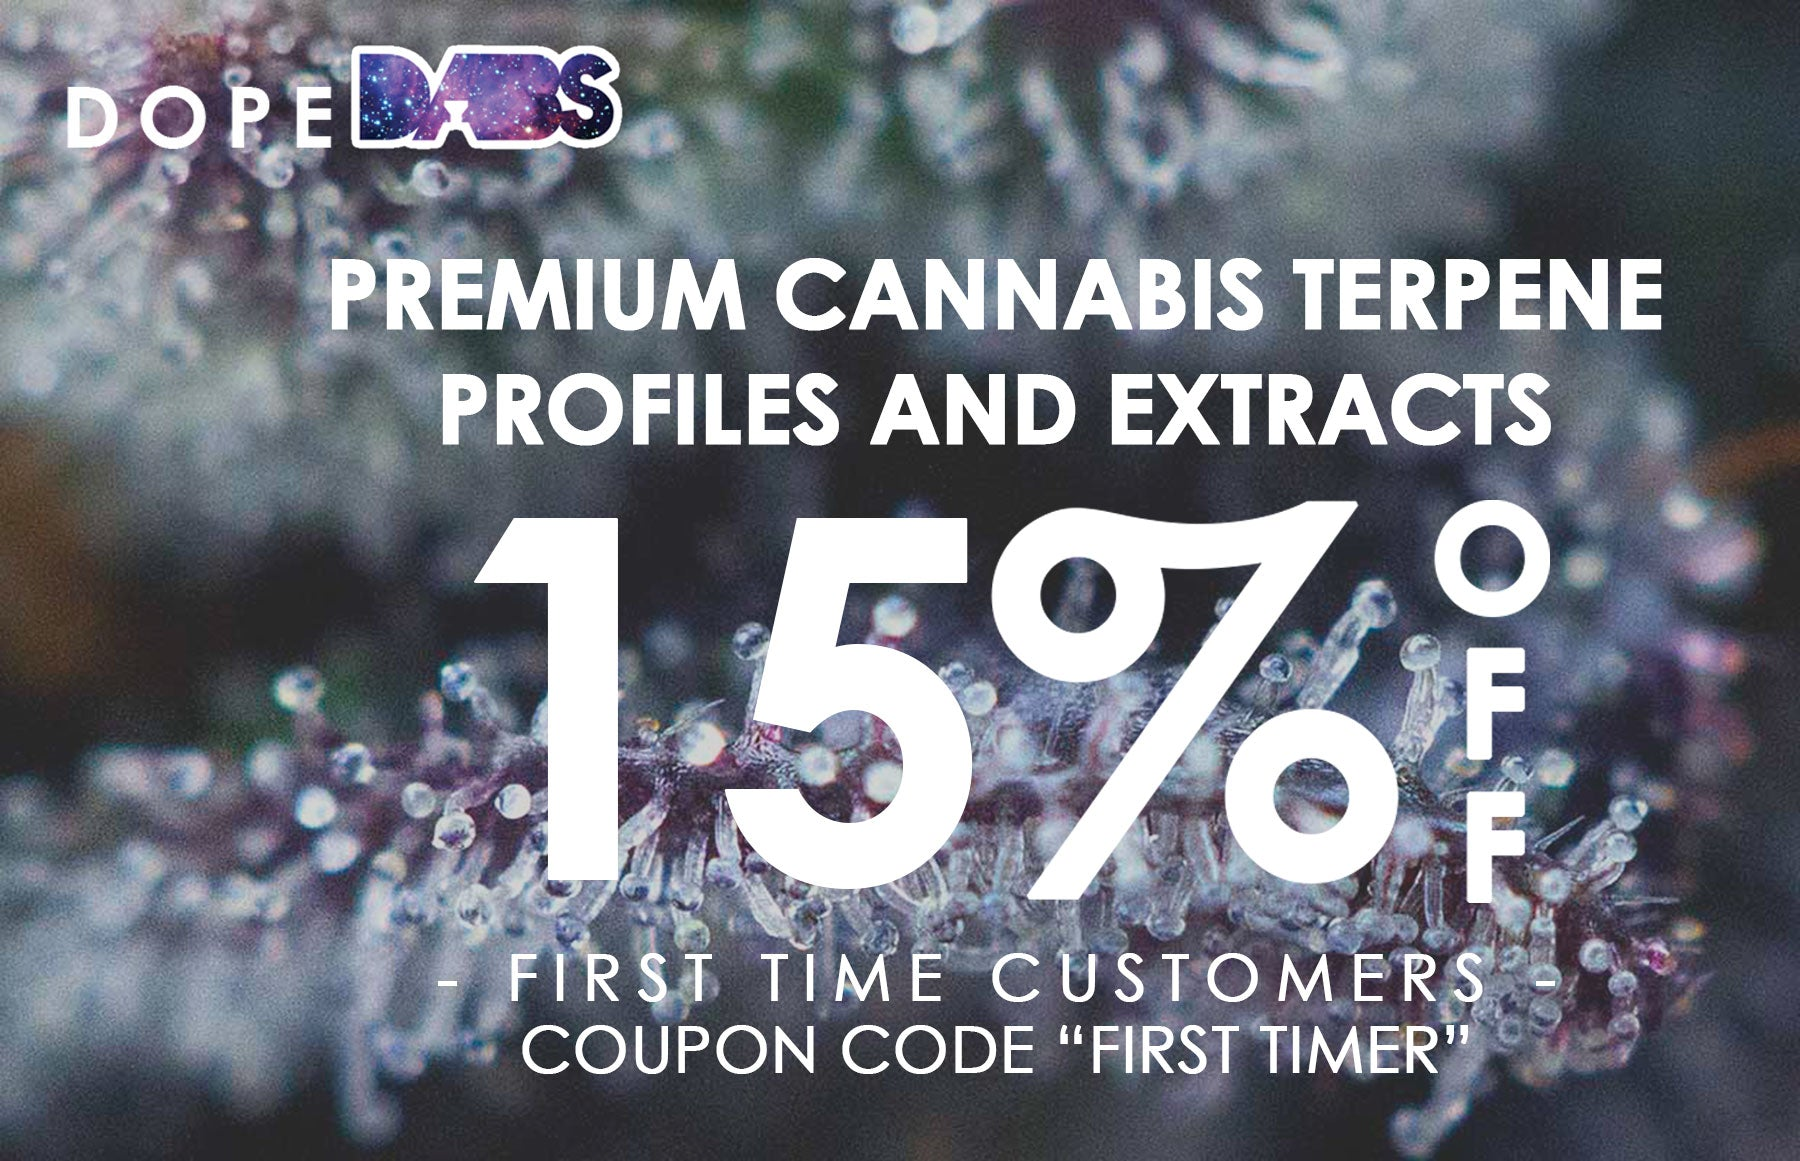 Dope Dabs Premium Cannabis Terpene Profiles and Extracts